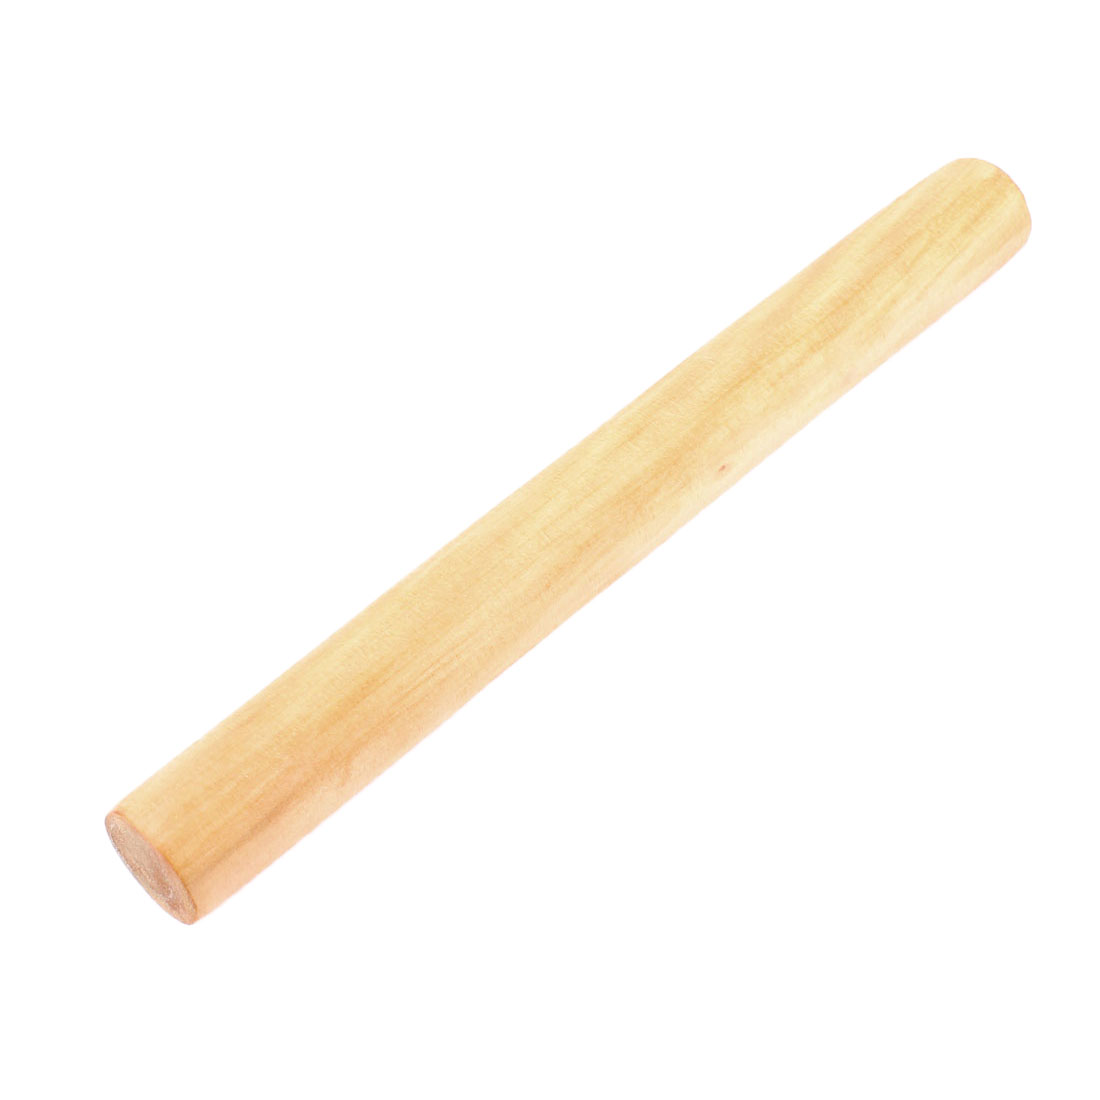 Wooden Stick Home Kitchen Accessory Handy Rolling Pin Holder 10 Inch Longth